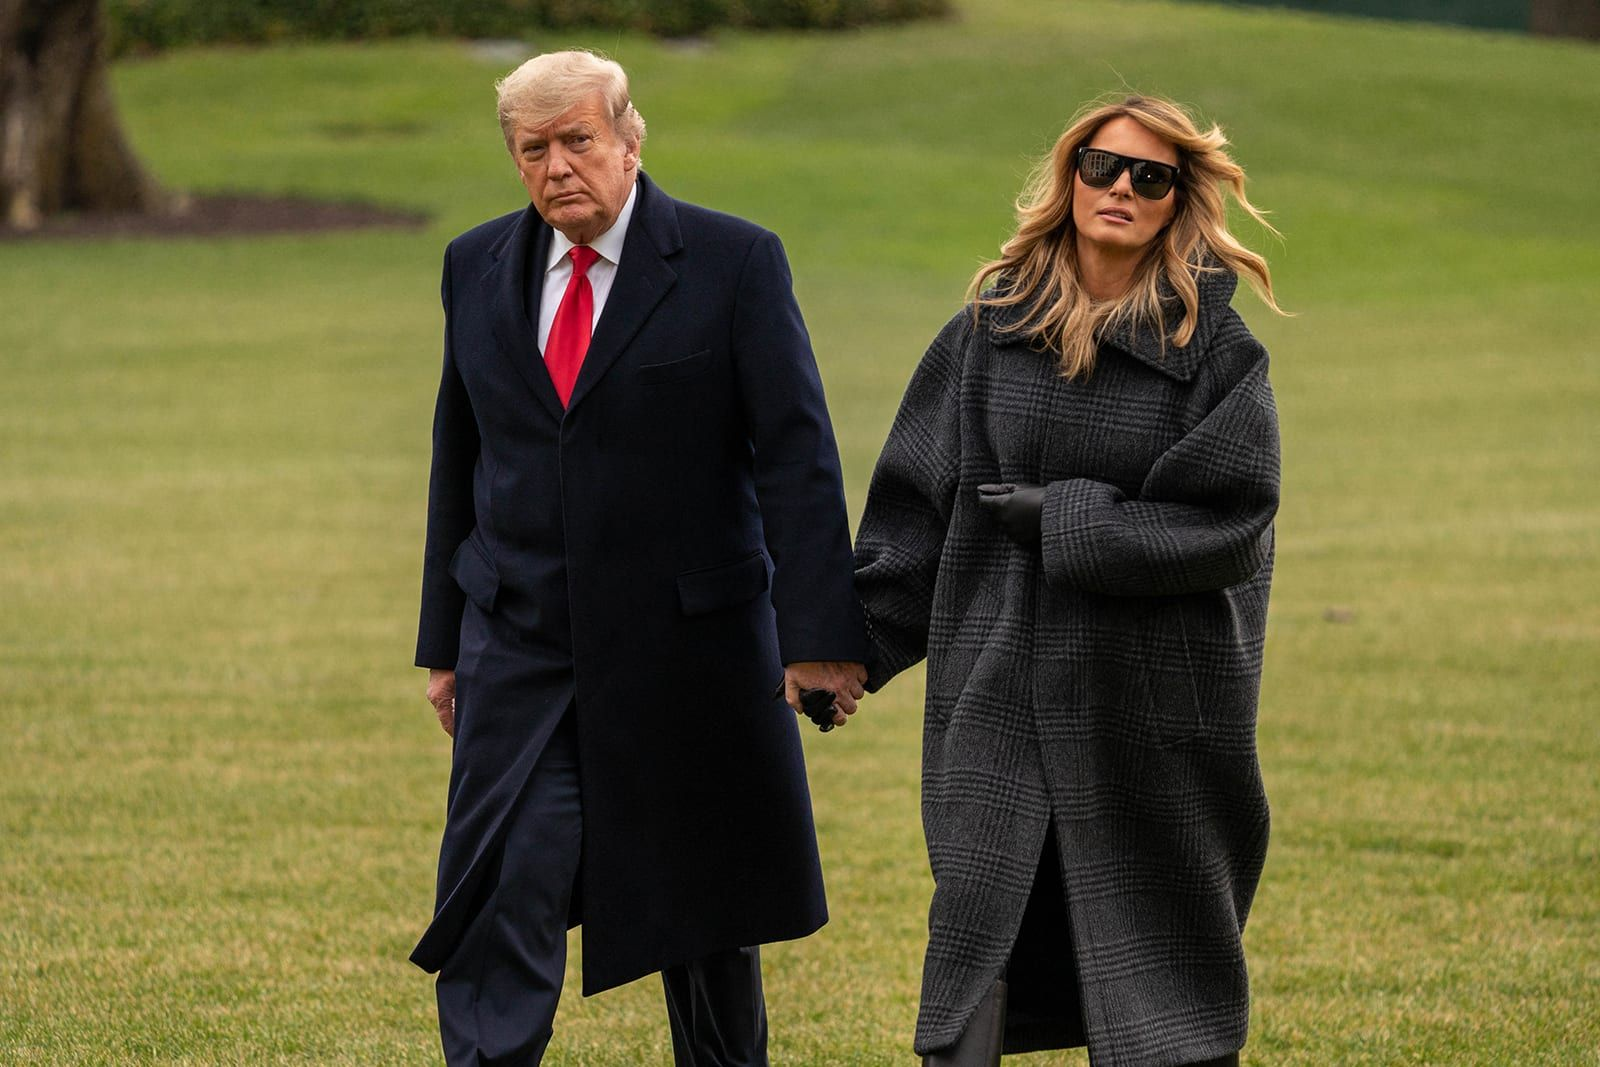 White House staff thrilled by departure of Trump family: 'The residence has life again'